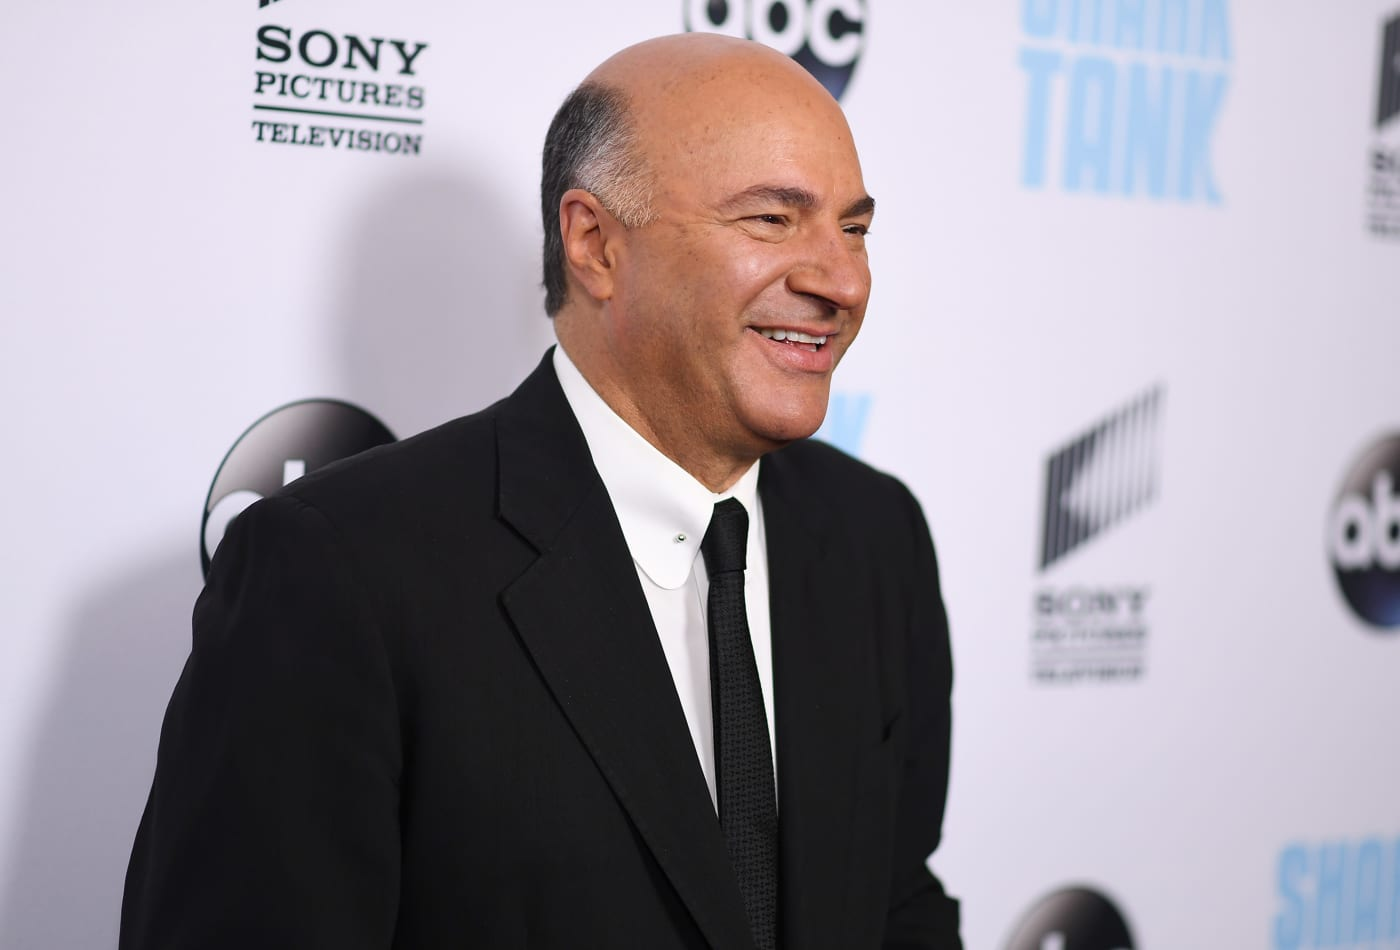 The 'aha' moment that changed Kevin O'Leary's life